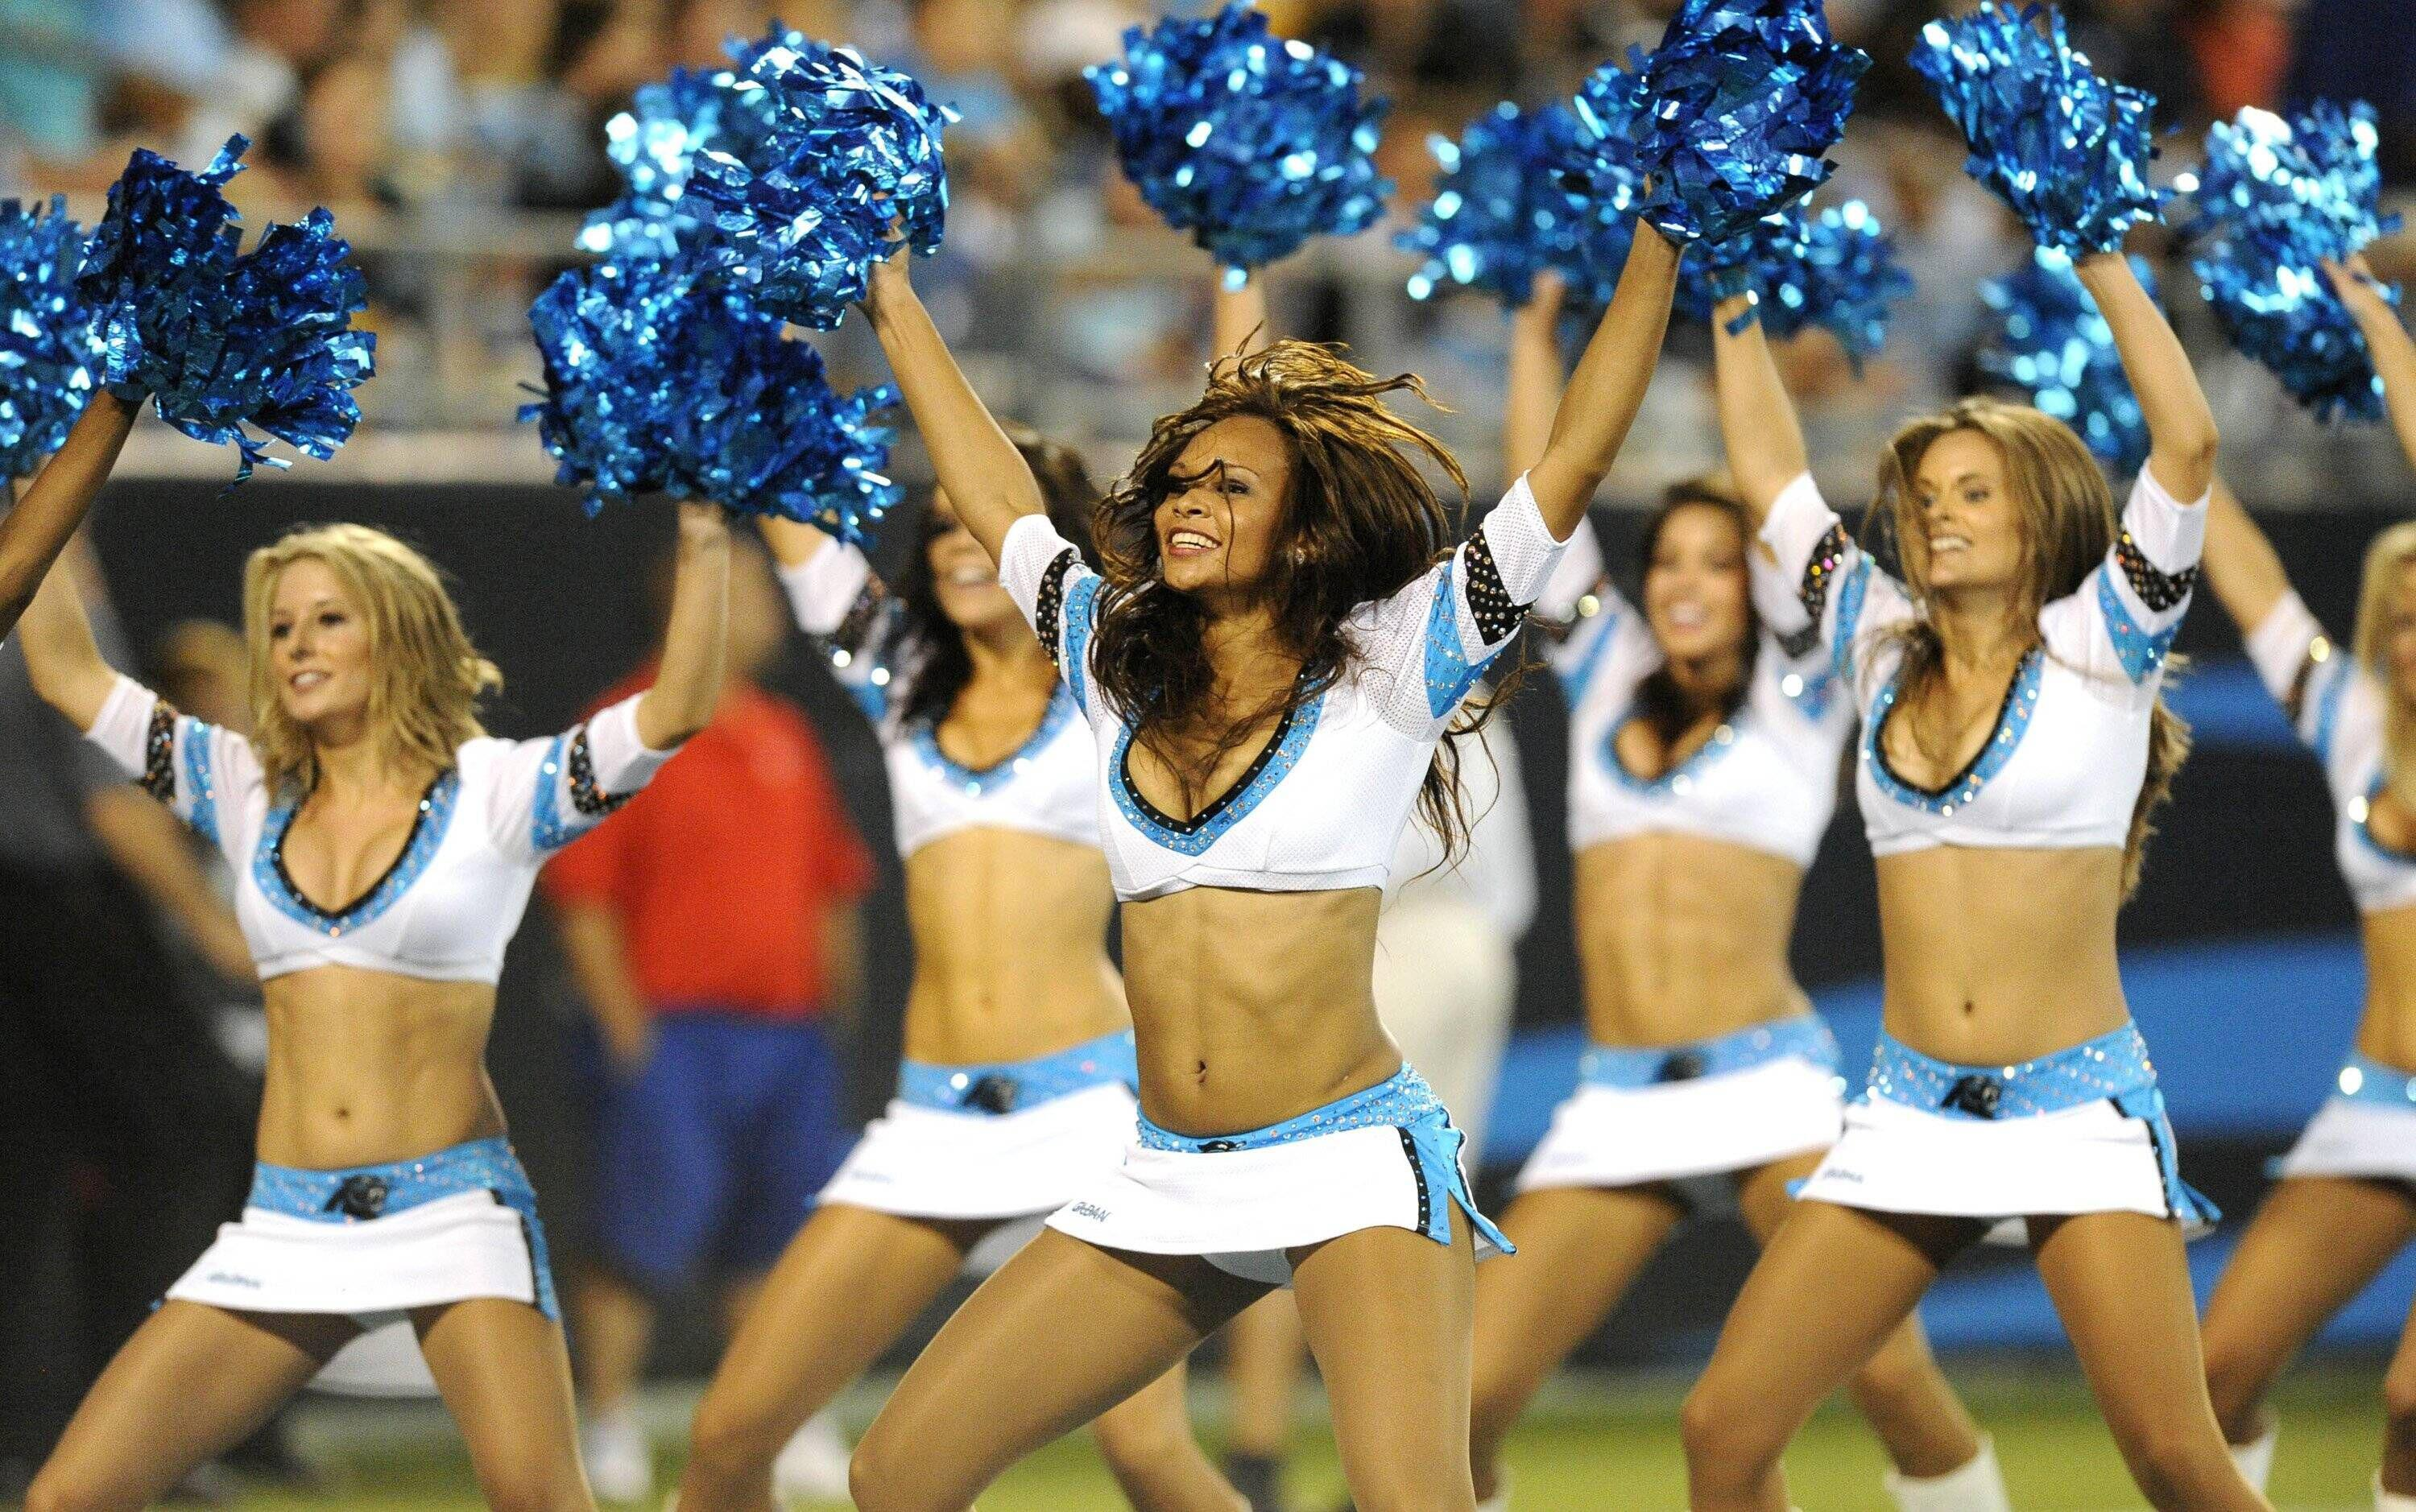 Bild zu Carolina Panthers, Cheerleader, NFL